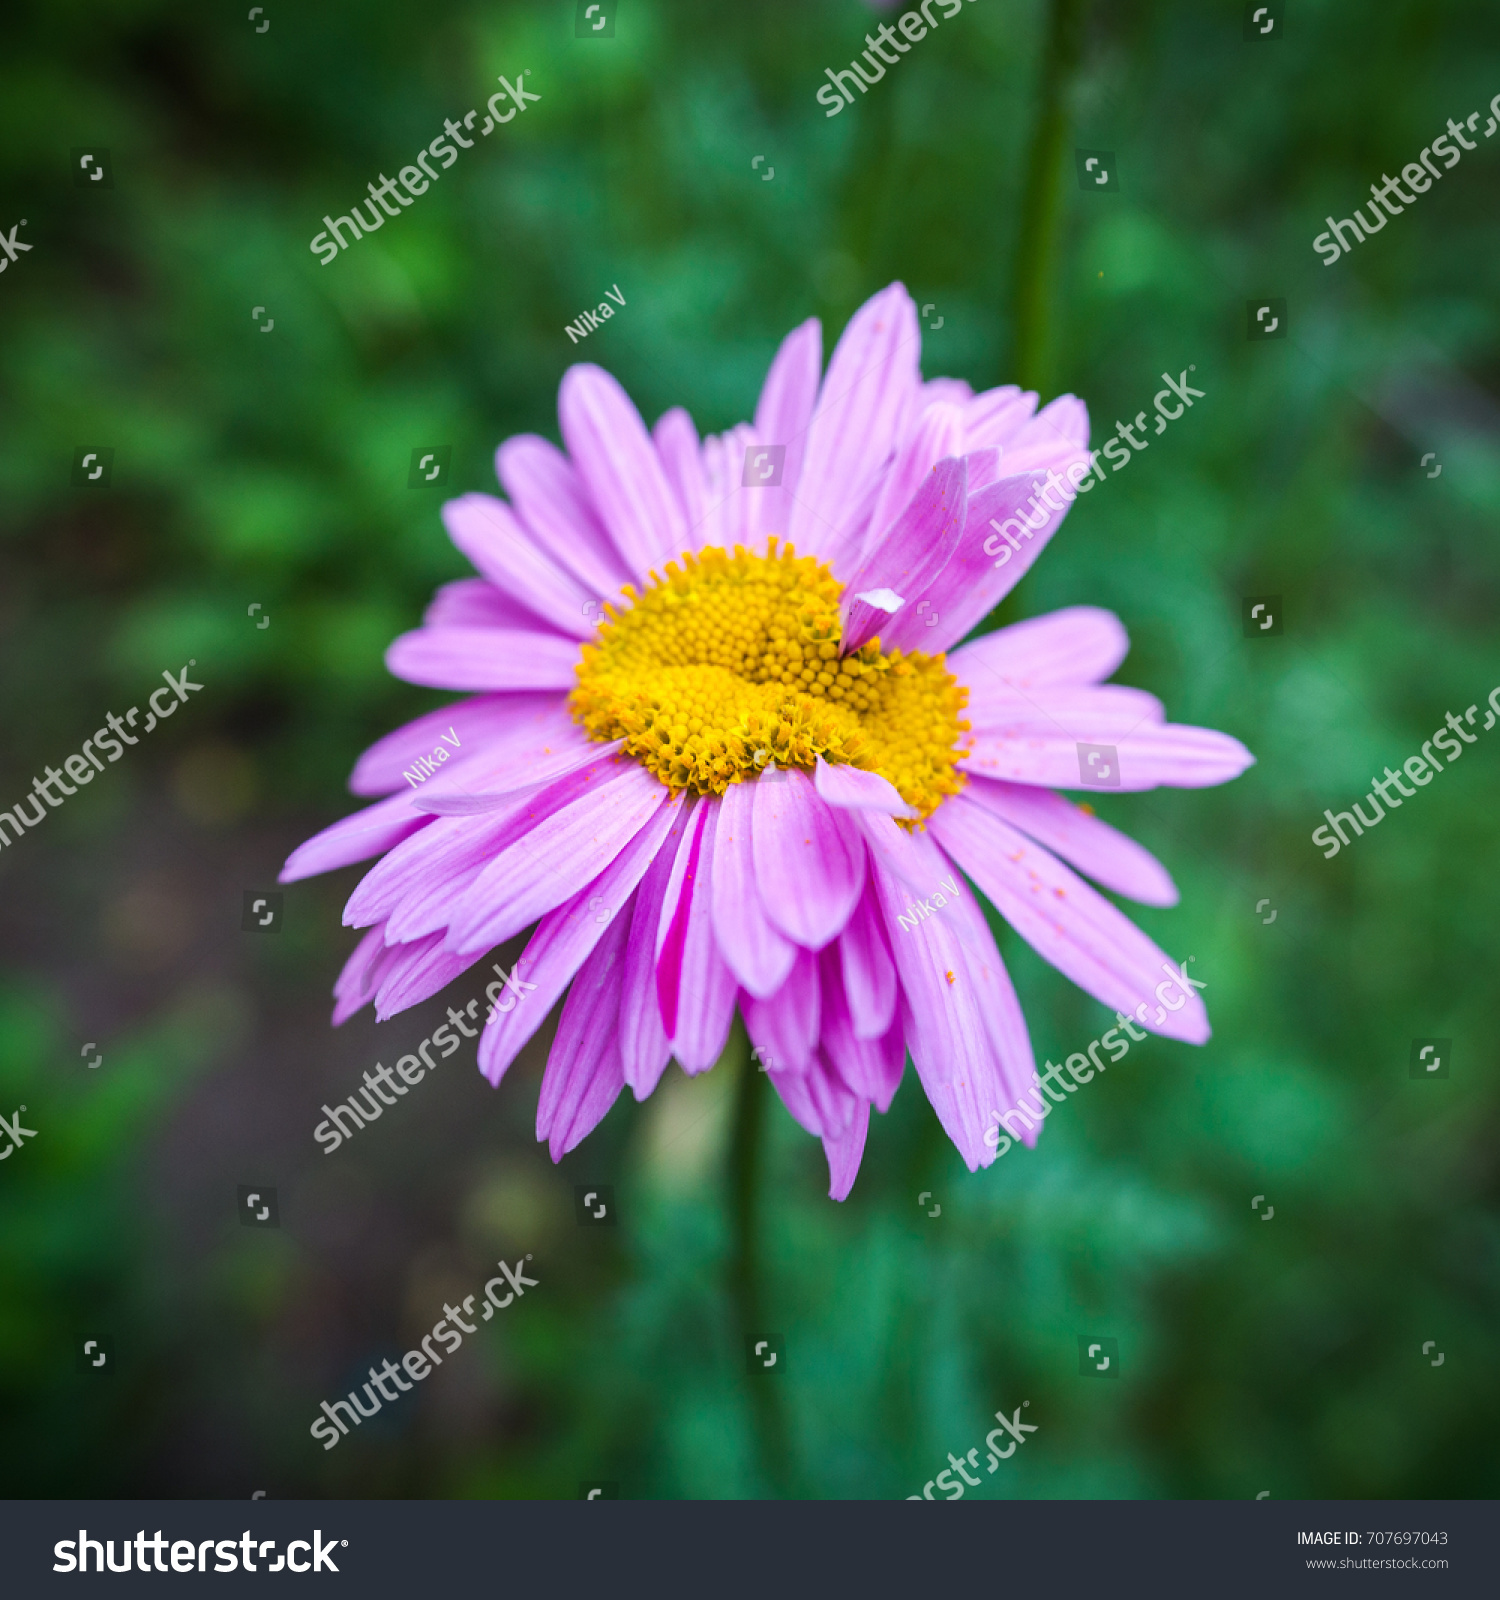 Abnormal flower double headed pink daisy stock photo edit now abnormal flower double headed pink daisy natural blurred background izmirmasajfo